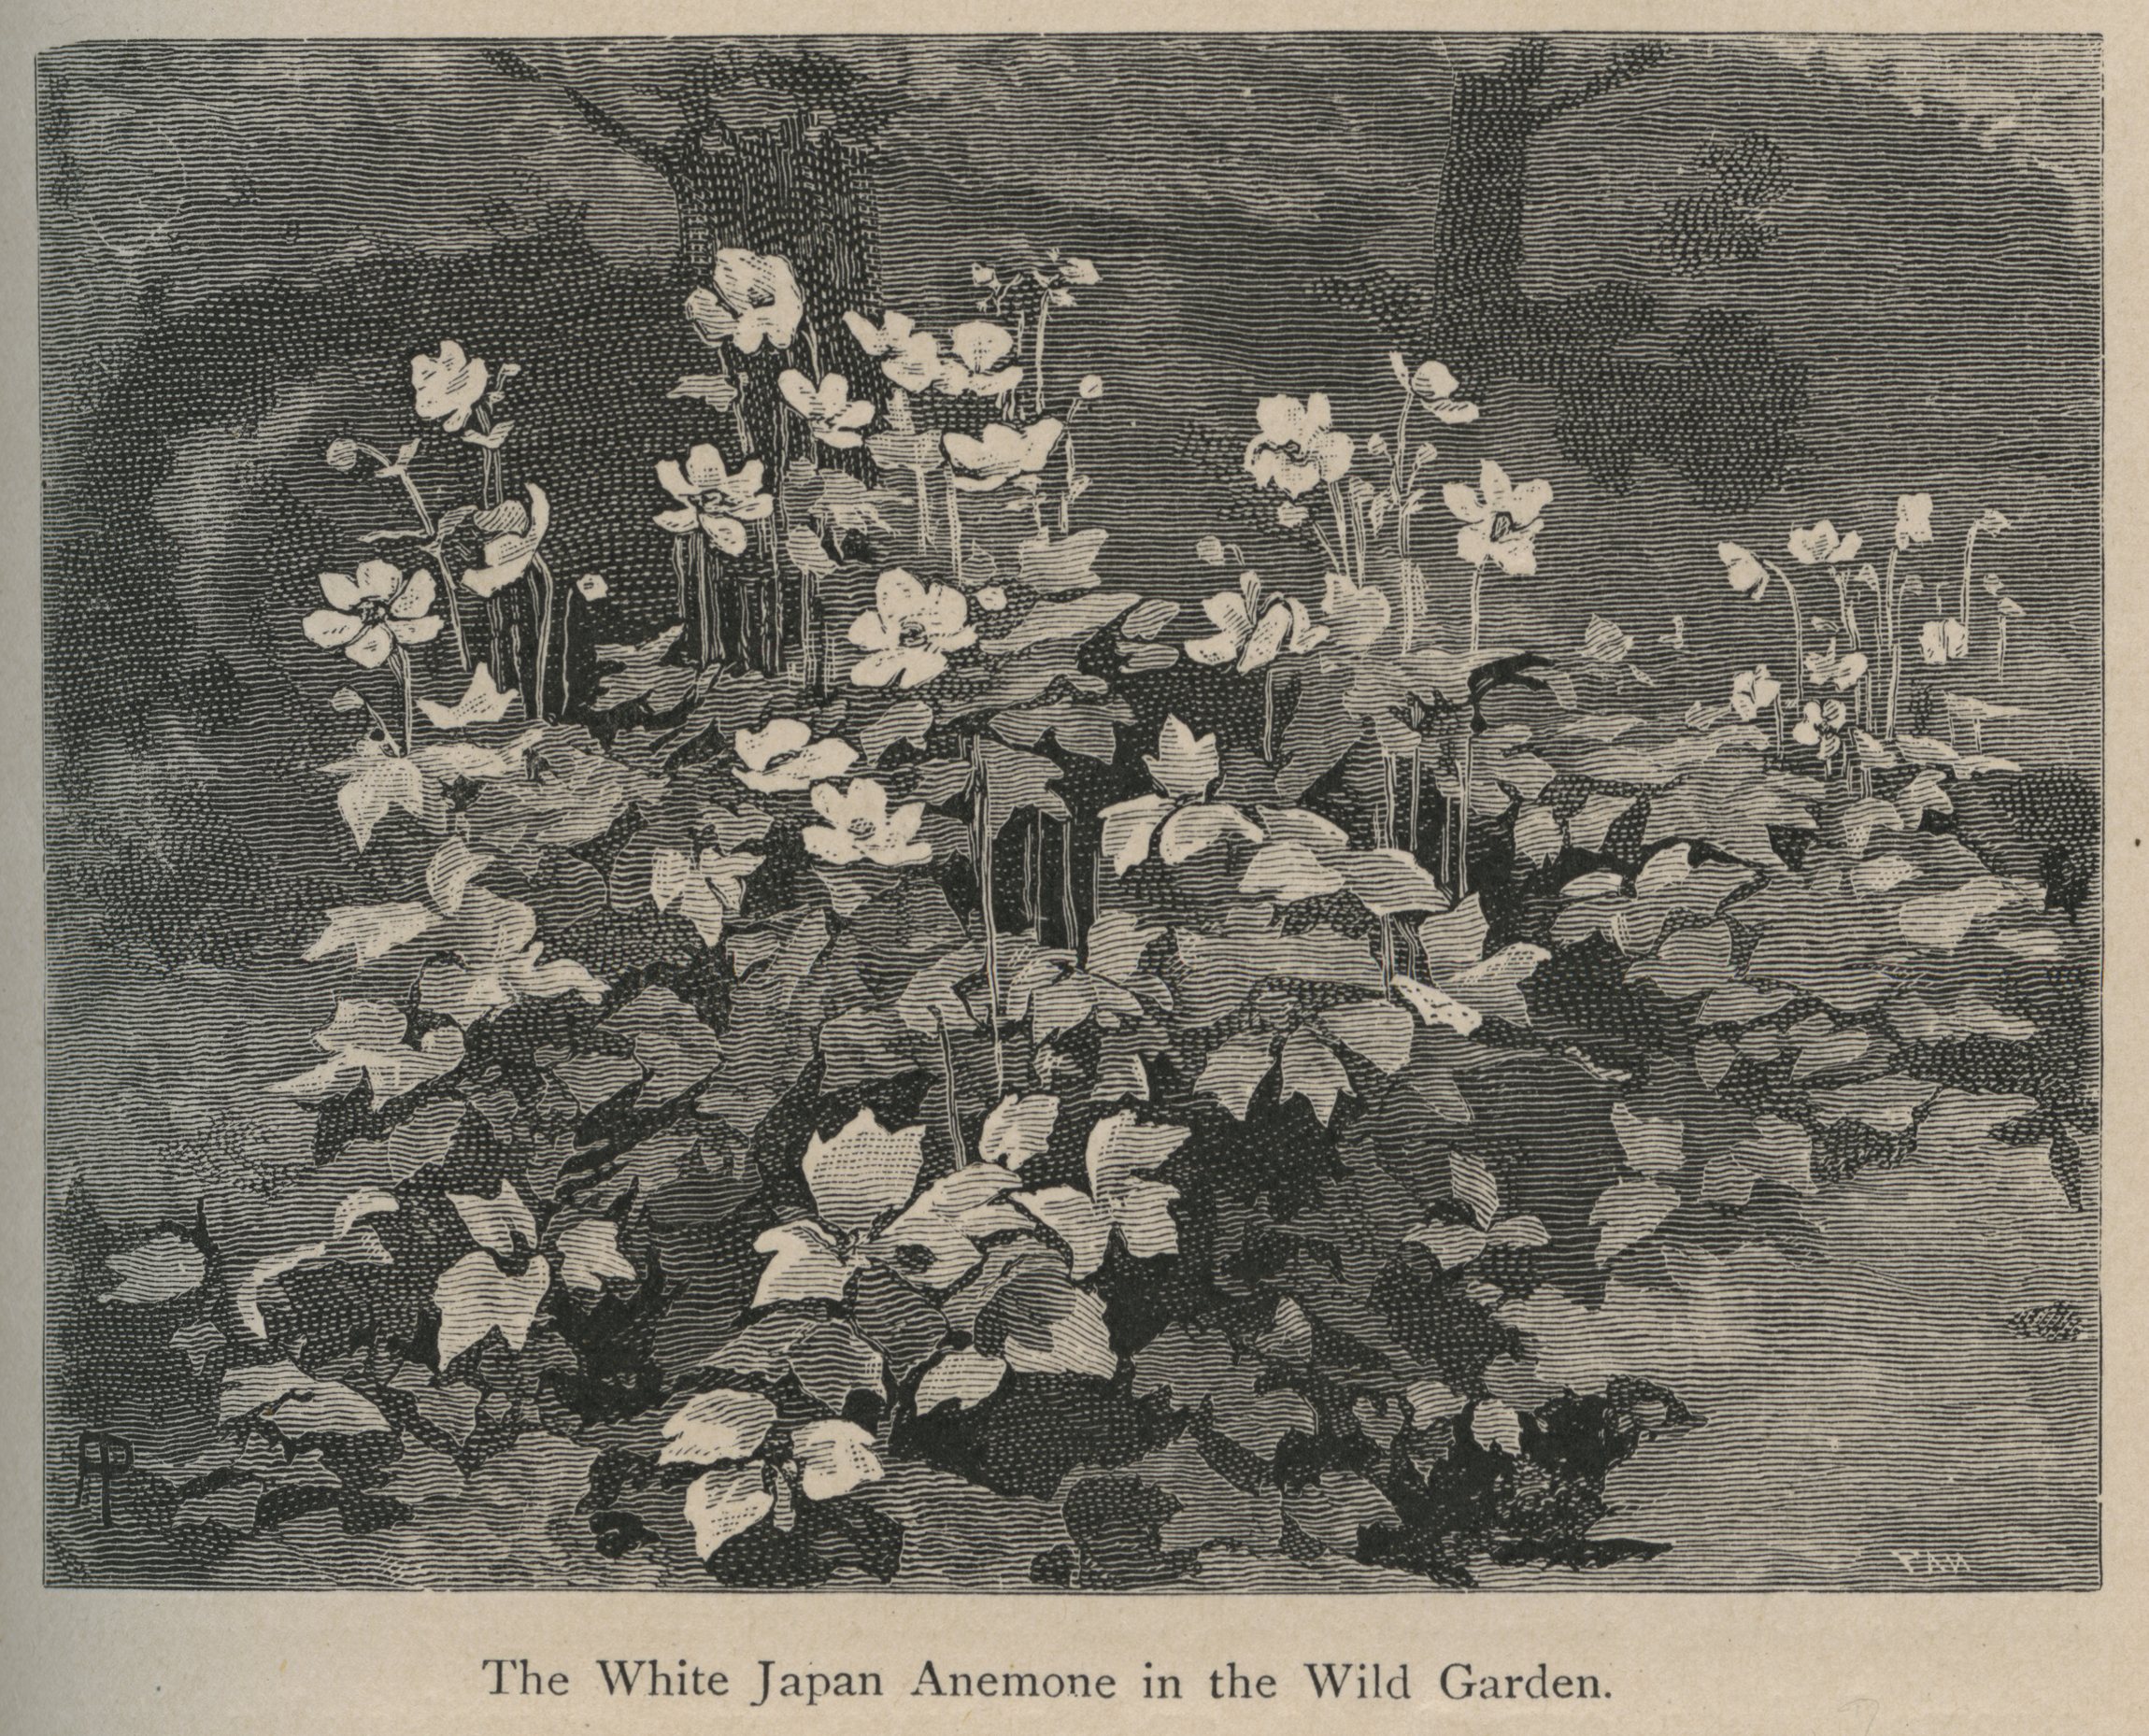 This illustration of a Japanese anemone in Robinson's The Wild Garden appeared later in American seed catalogs.